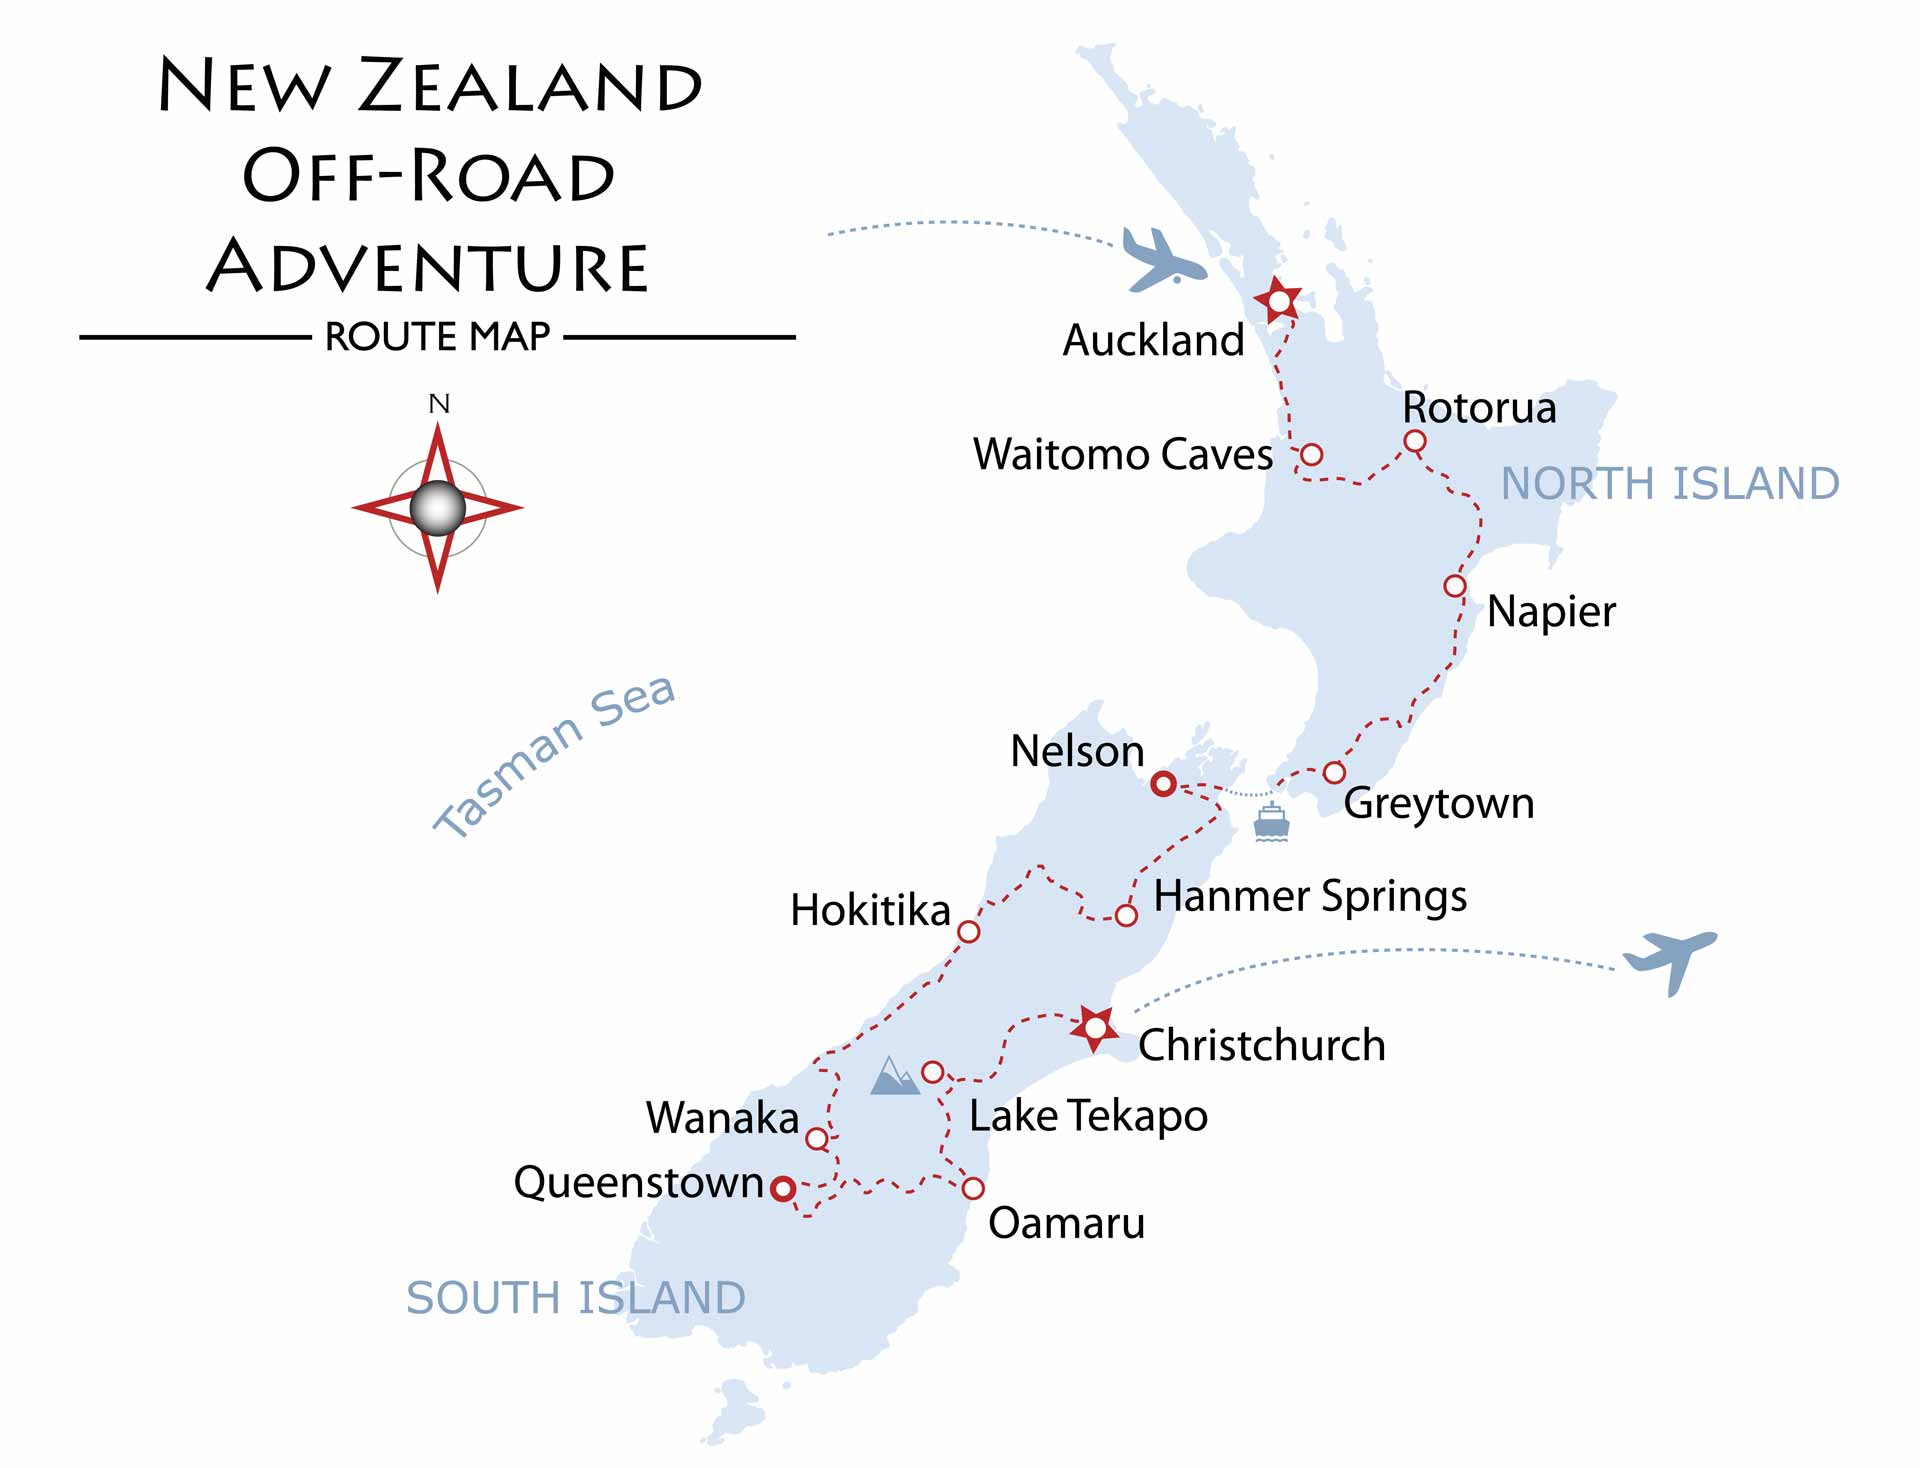 New Zealand Off-Road Adventure Map